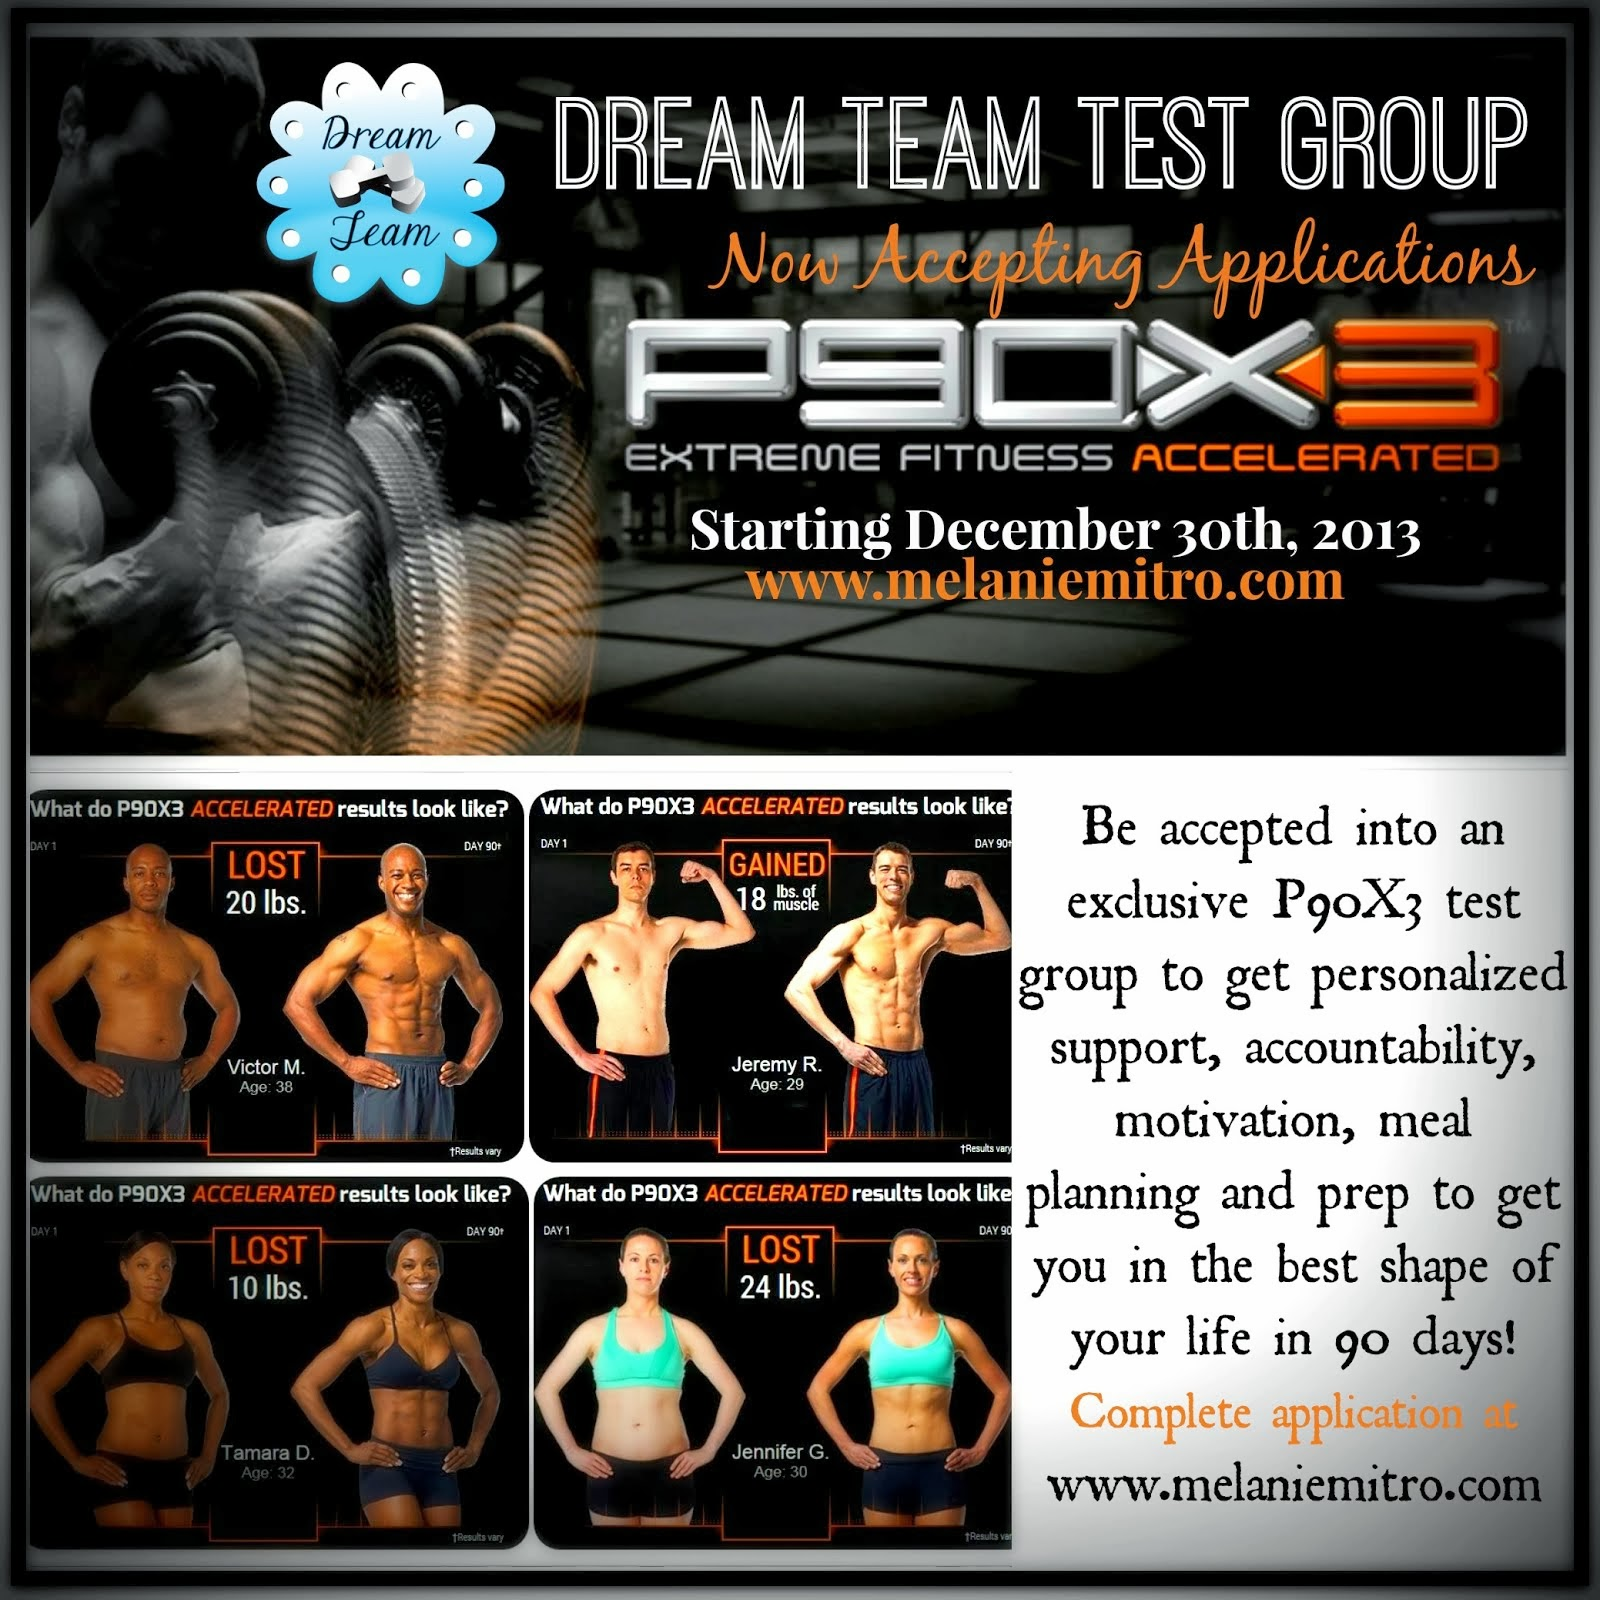 P90X3 Test Group